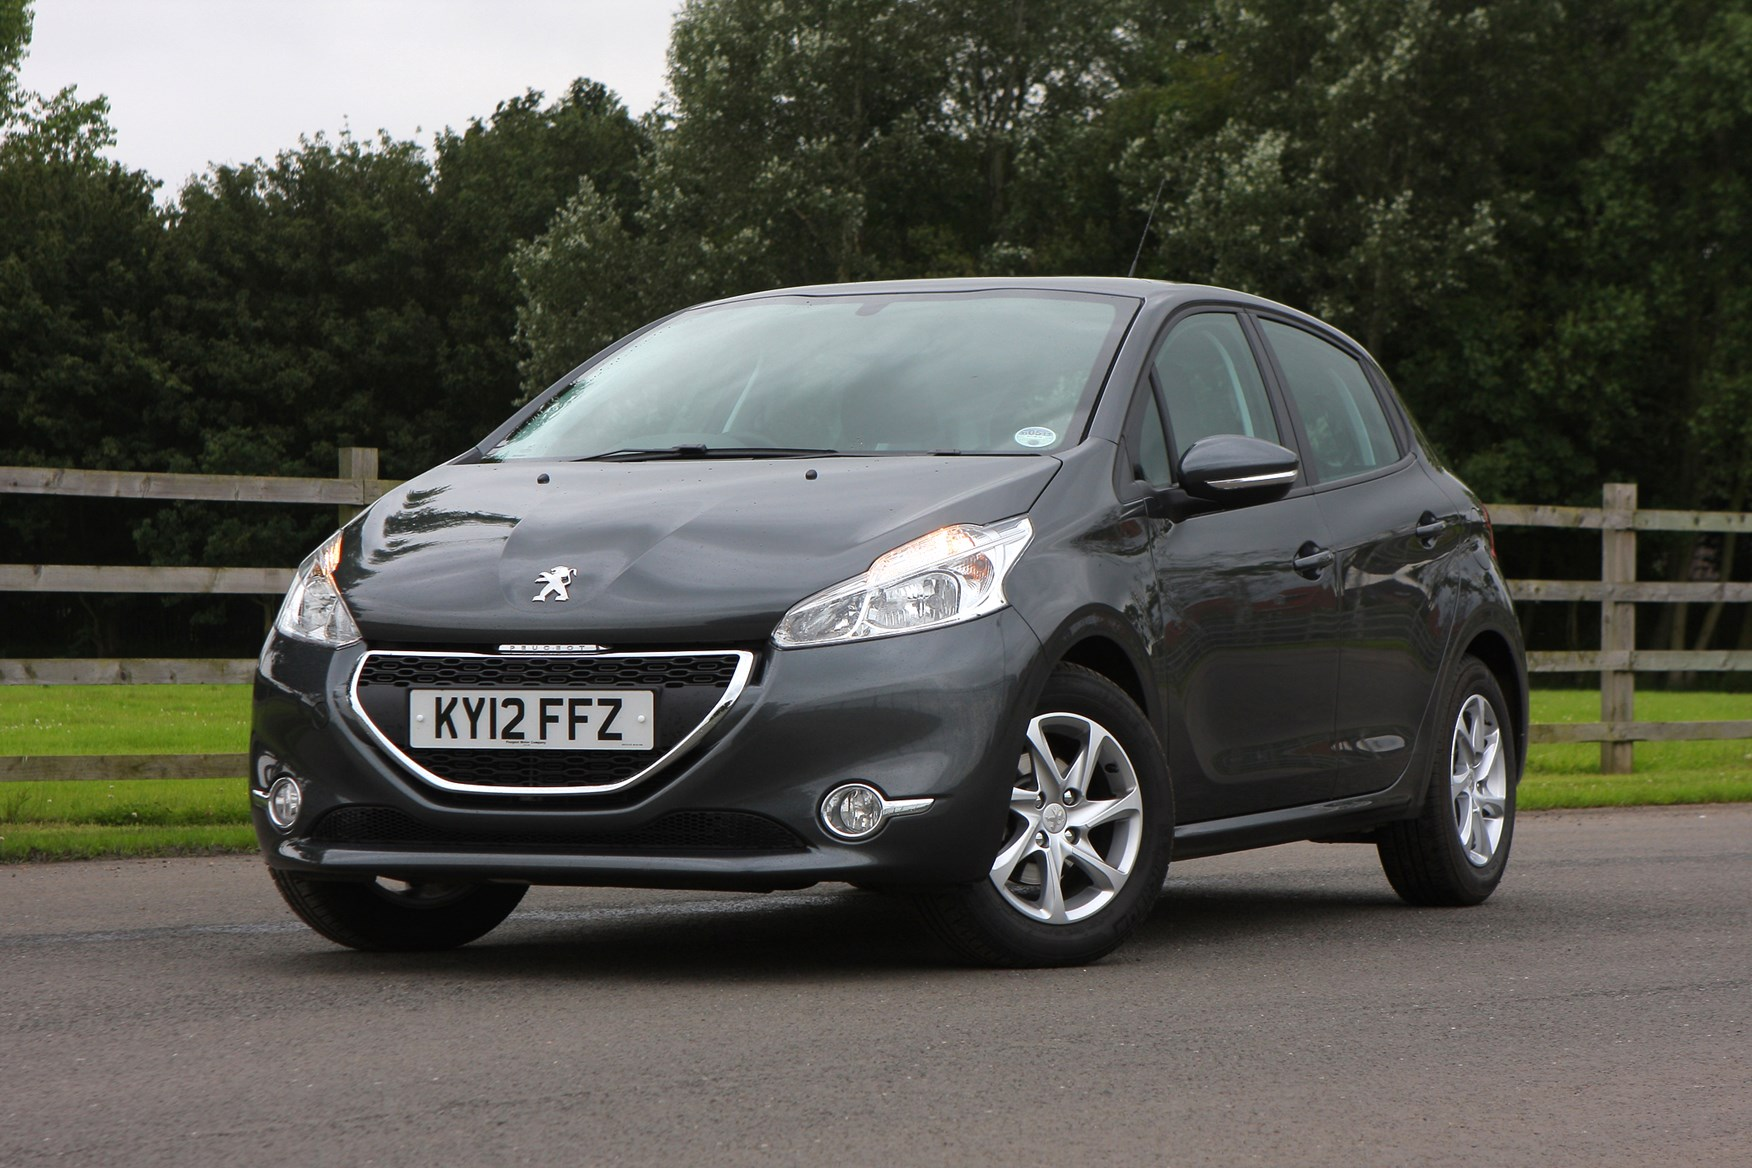 peugeot 208 hatchback 2012 photos parkers. Black Bedroom Furniture Sets. Home Design Ideas